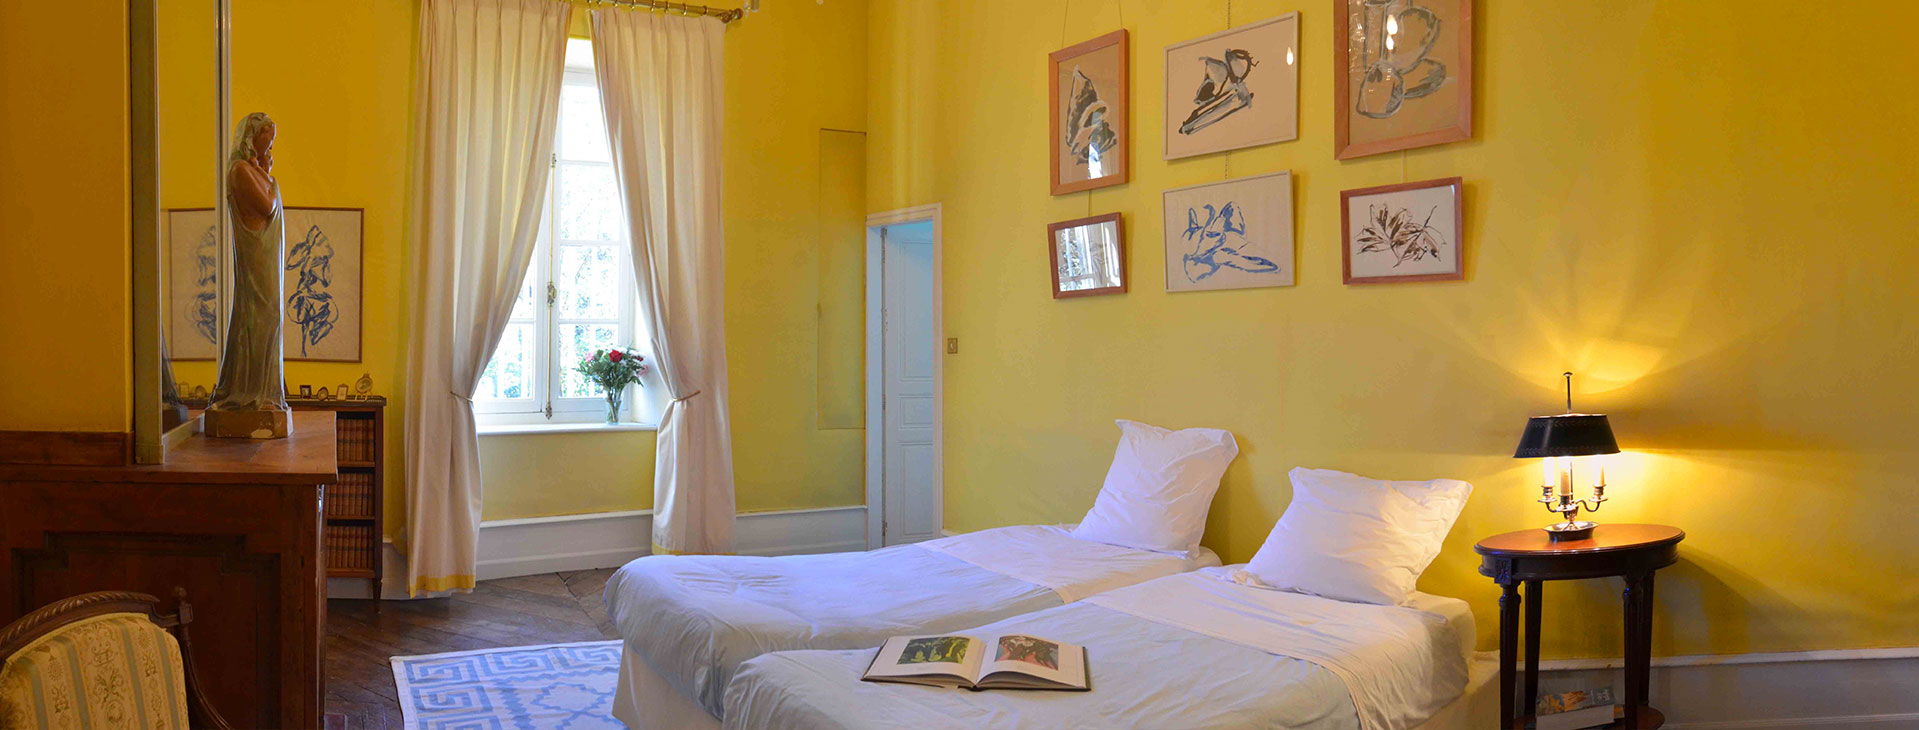 Chambre jaune / Yellow bedroom